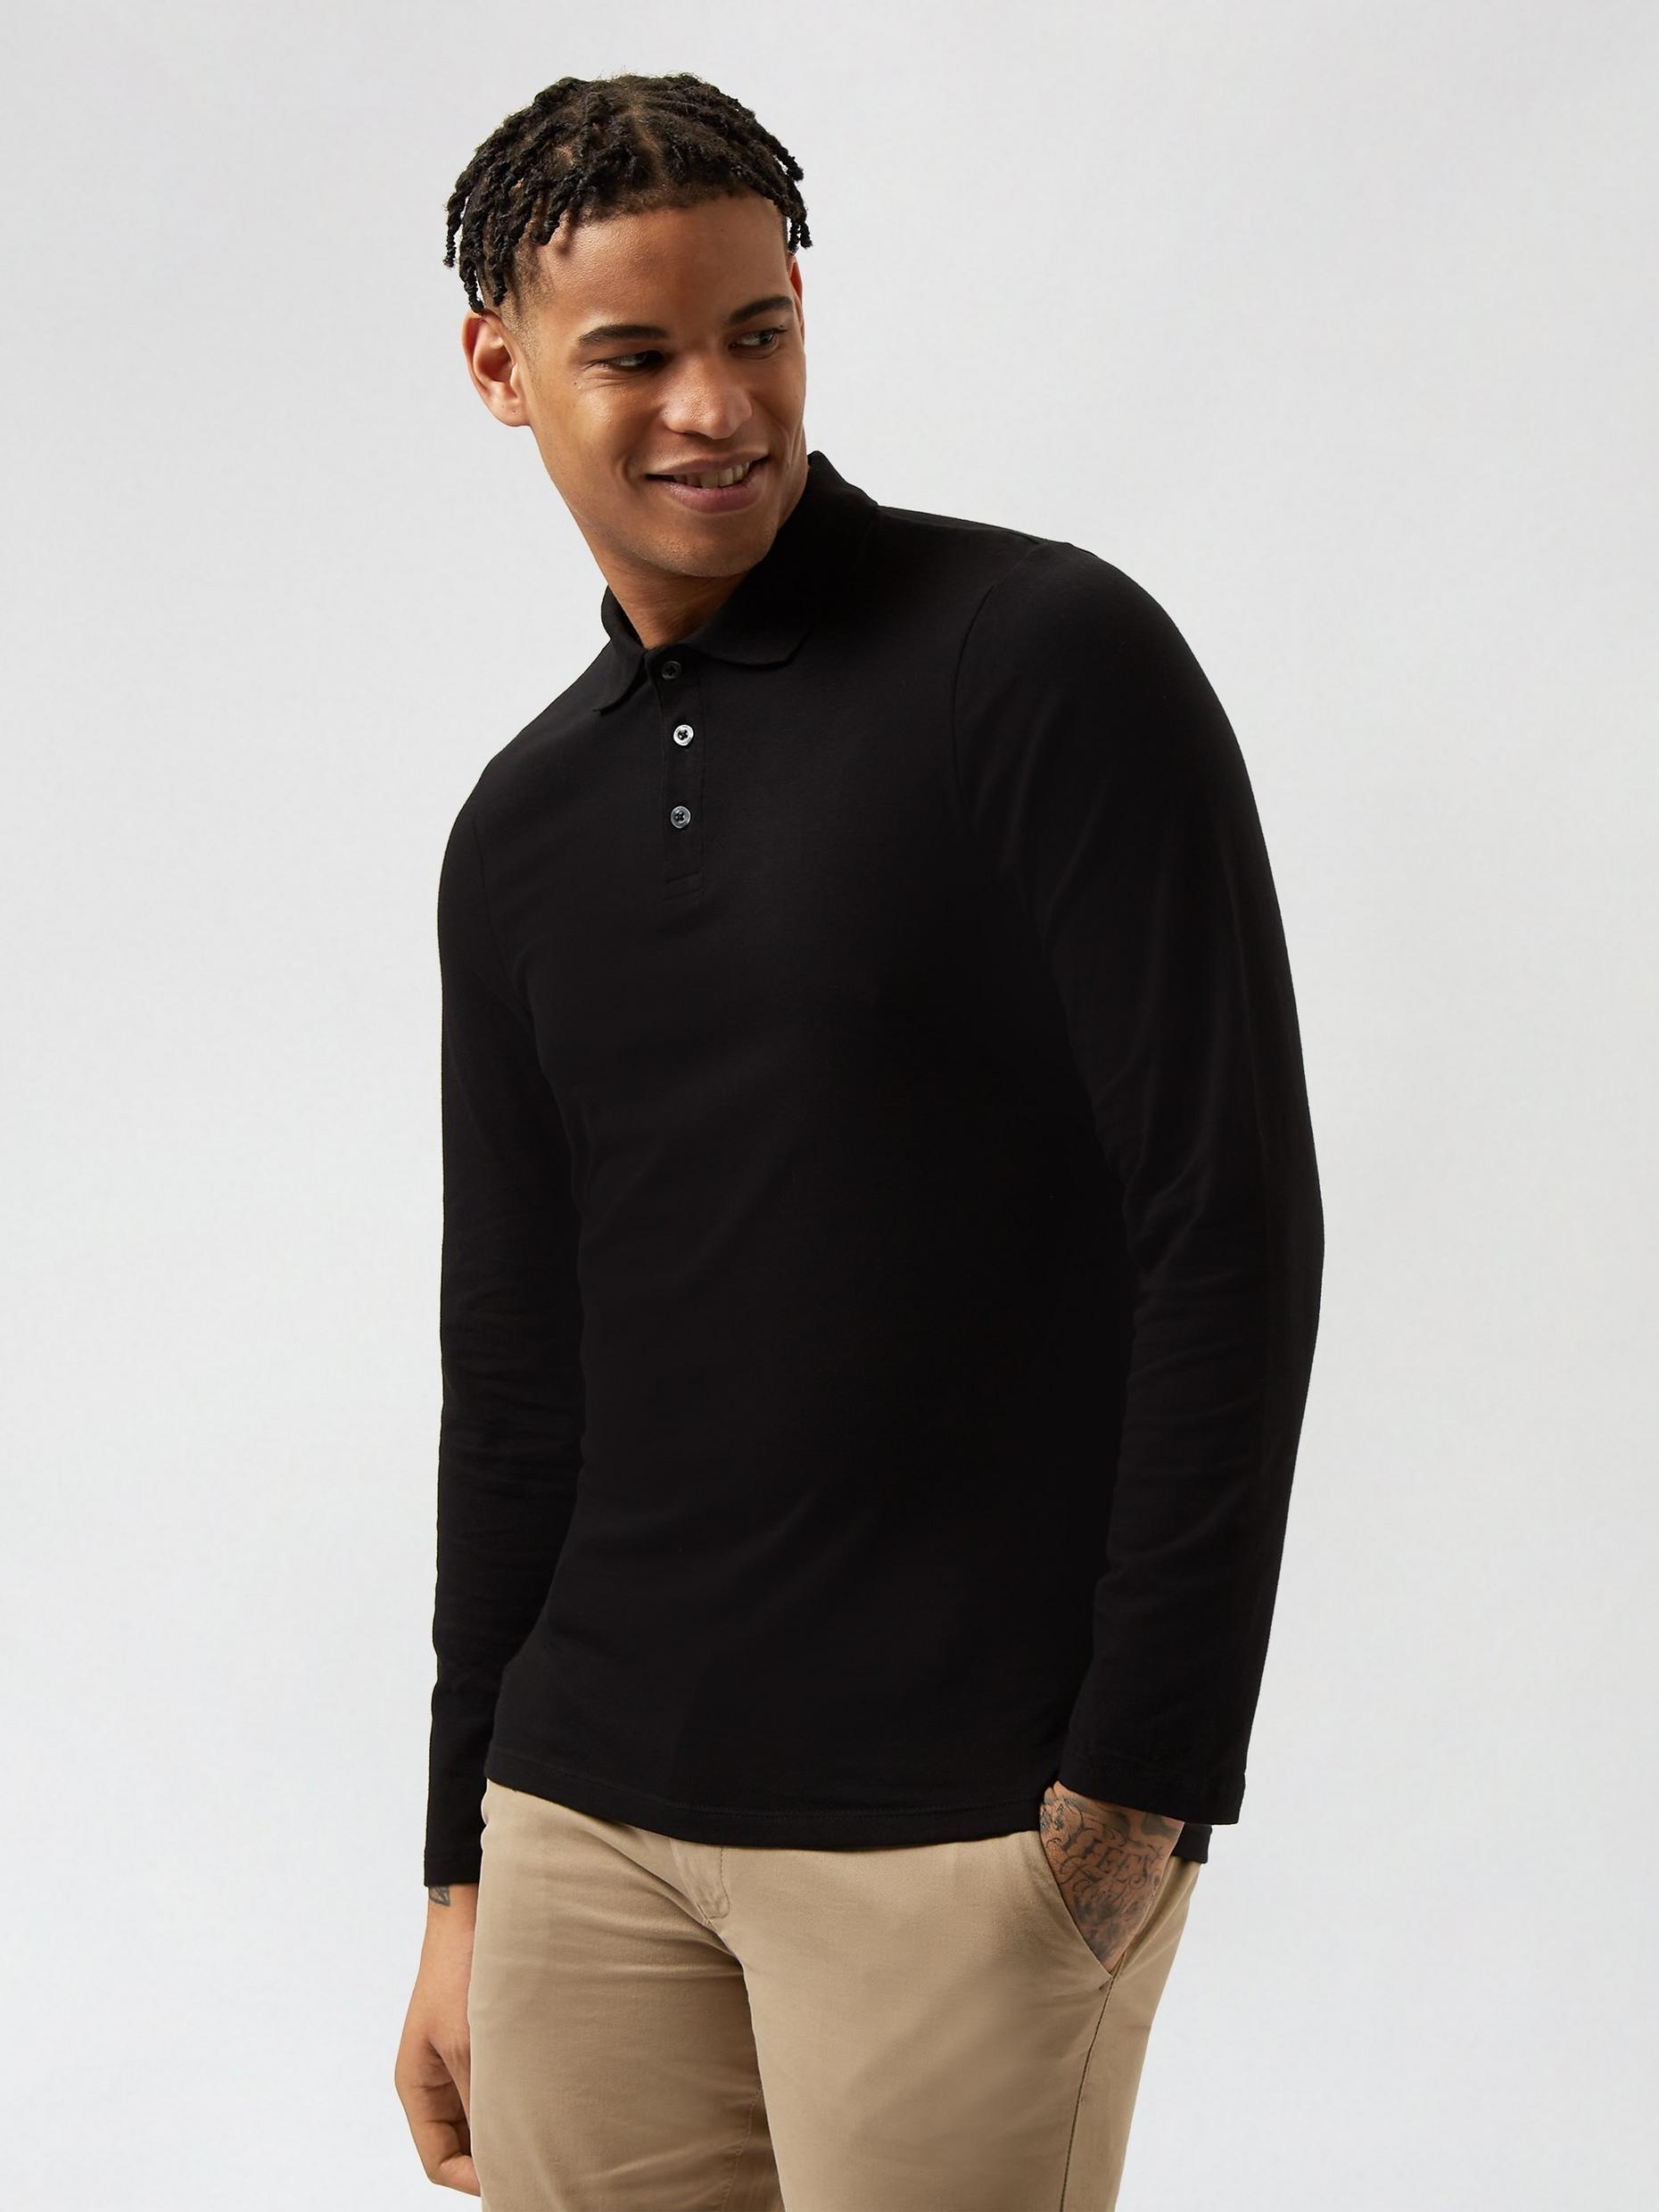 2 Pack Black and Khaki Long Sleeve Muscle Fit Polo